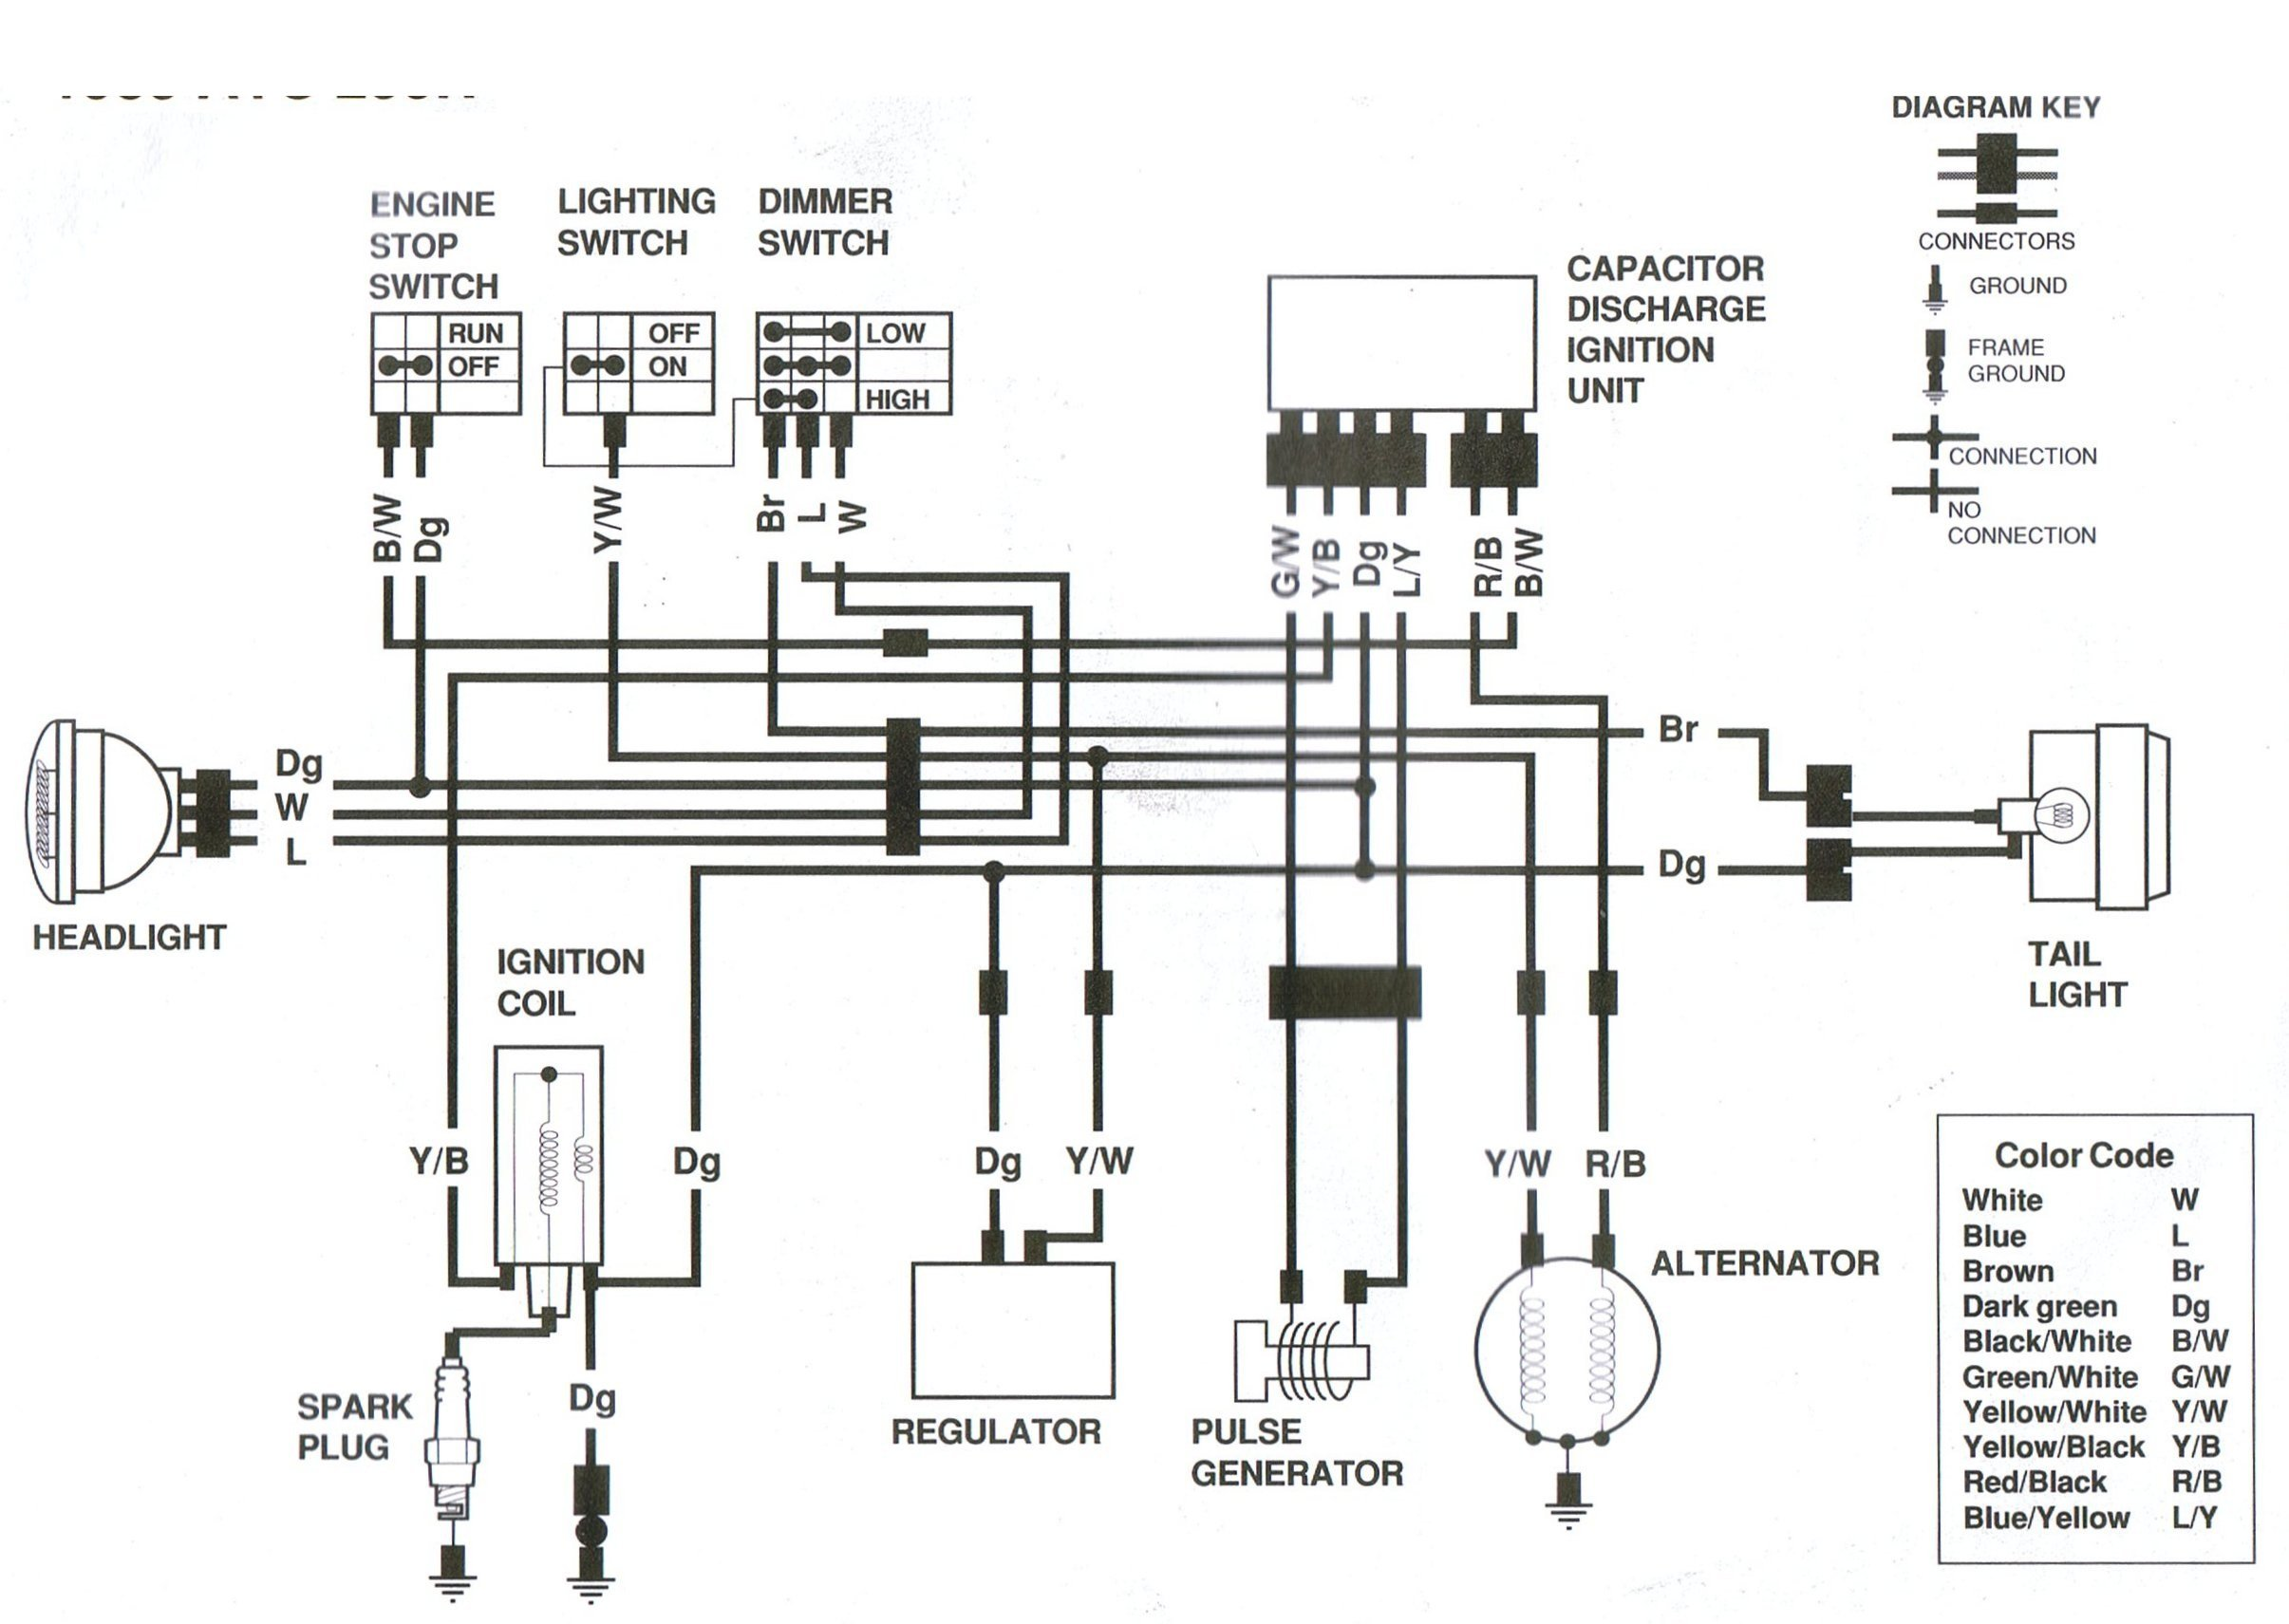 [DIAGRAM] Dolphin Quad Gauges Wiring Diagram FULL Version